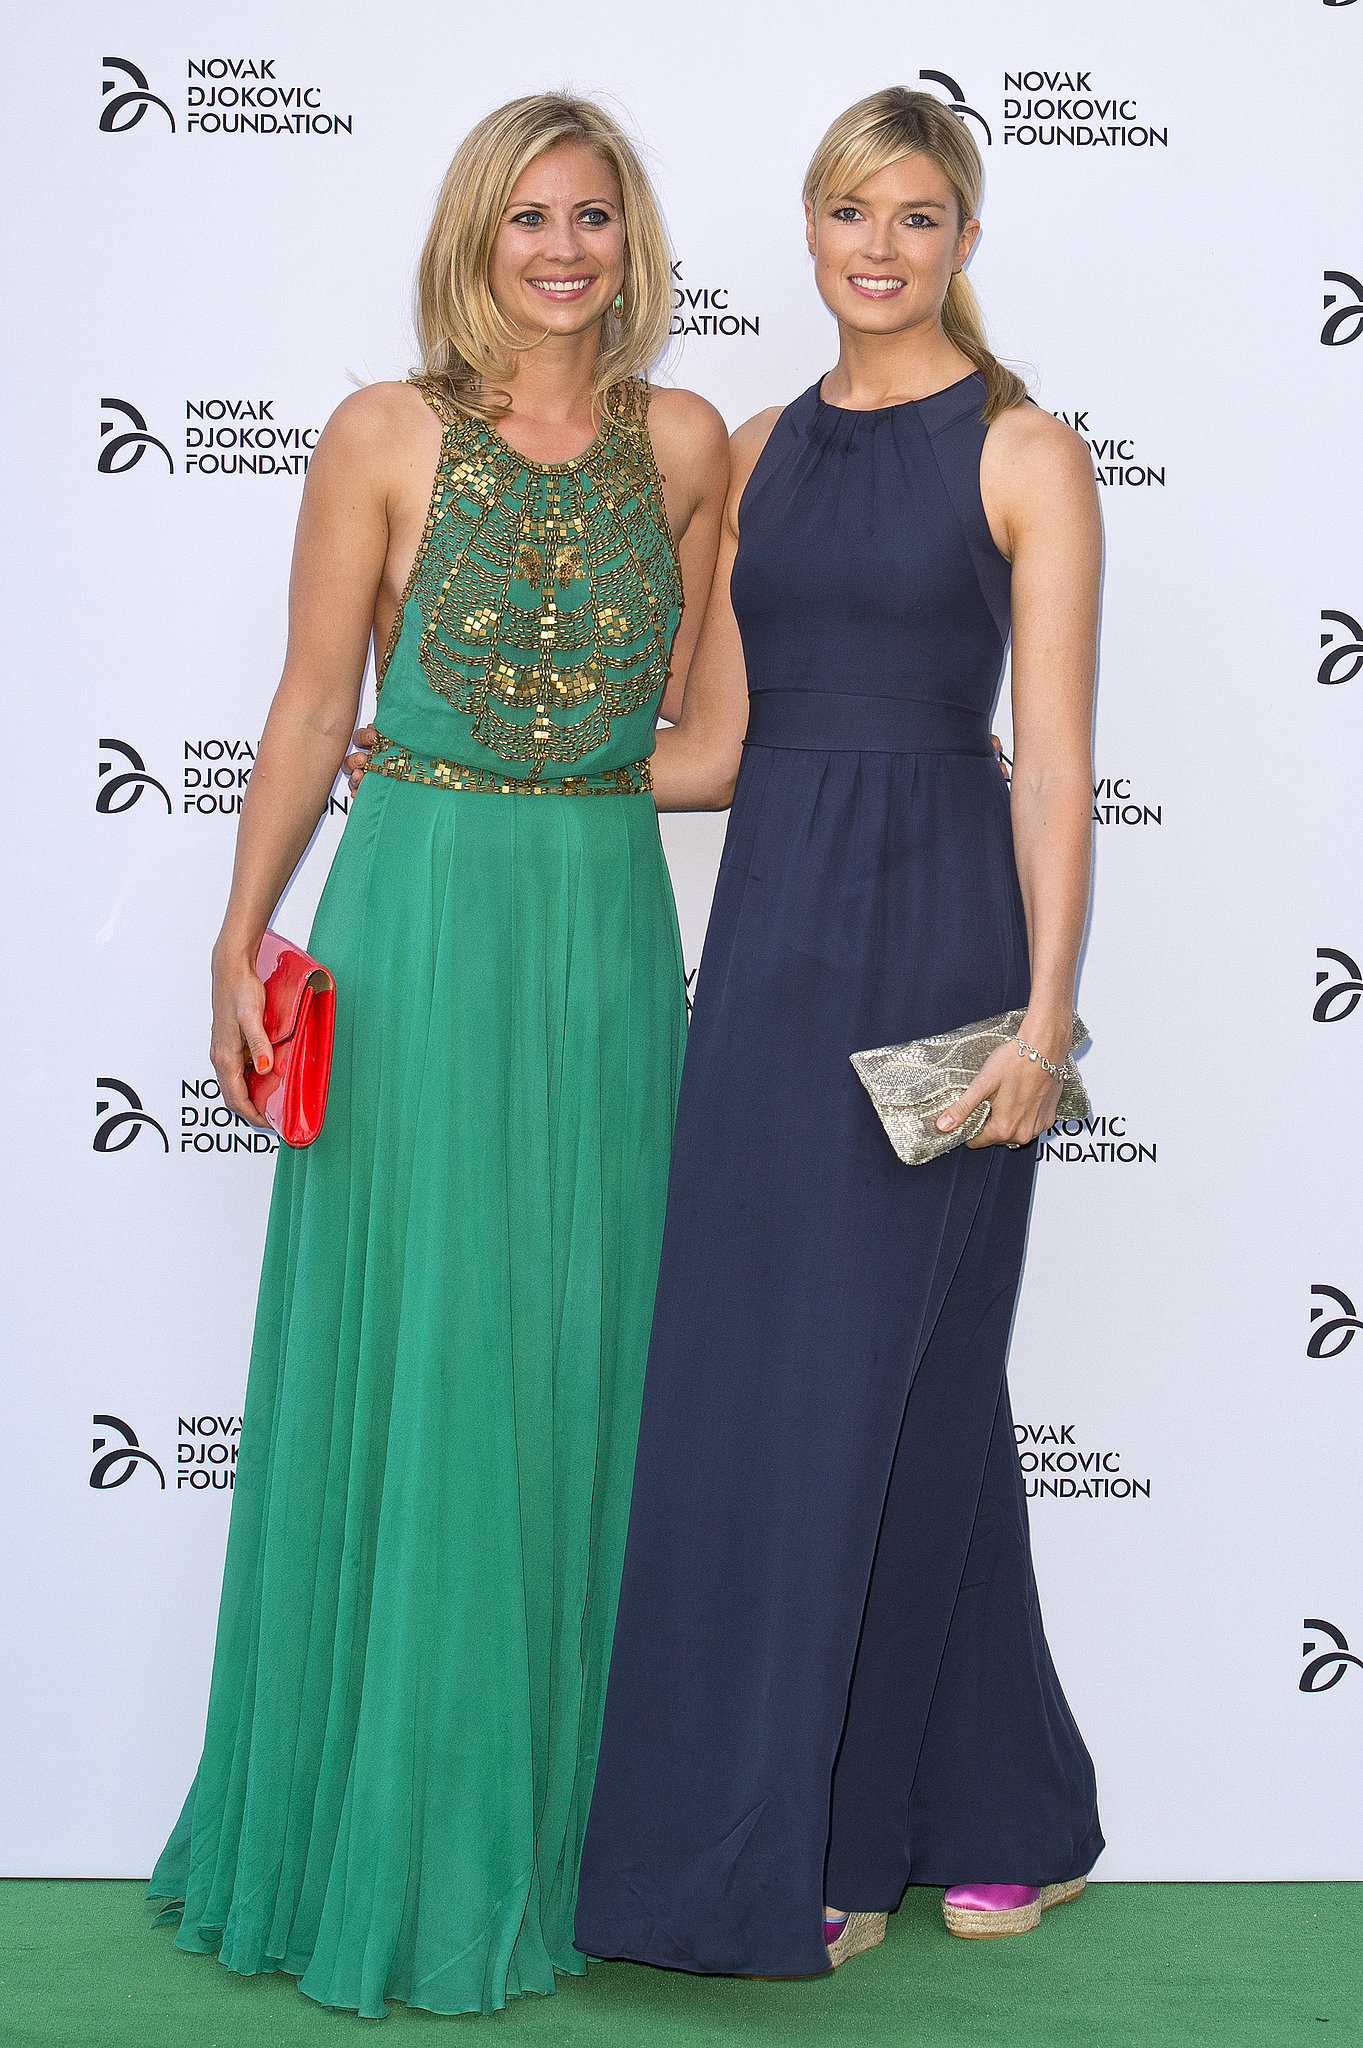 The Novak Djokovic Foundation brought out Holly Branson and Isabella Anstruther-Gough-Calthorpe in dramatic jewel-tone gowns.